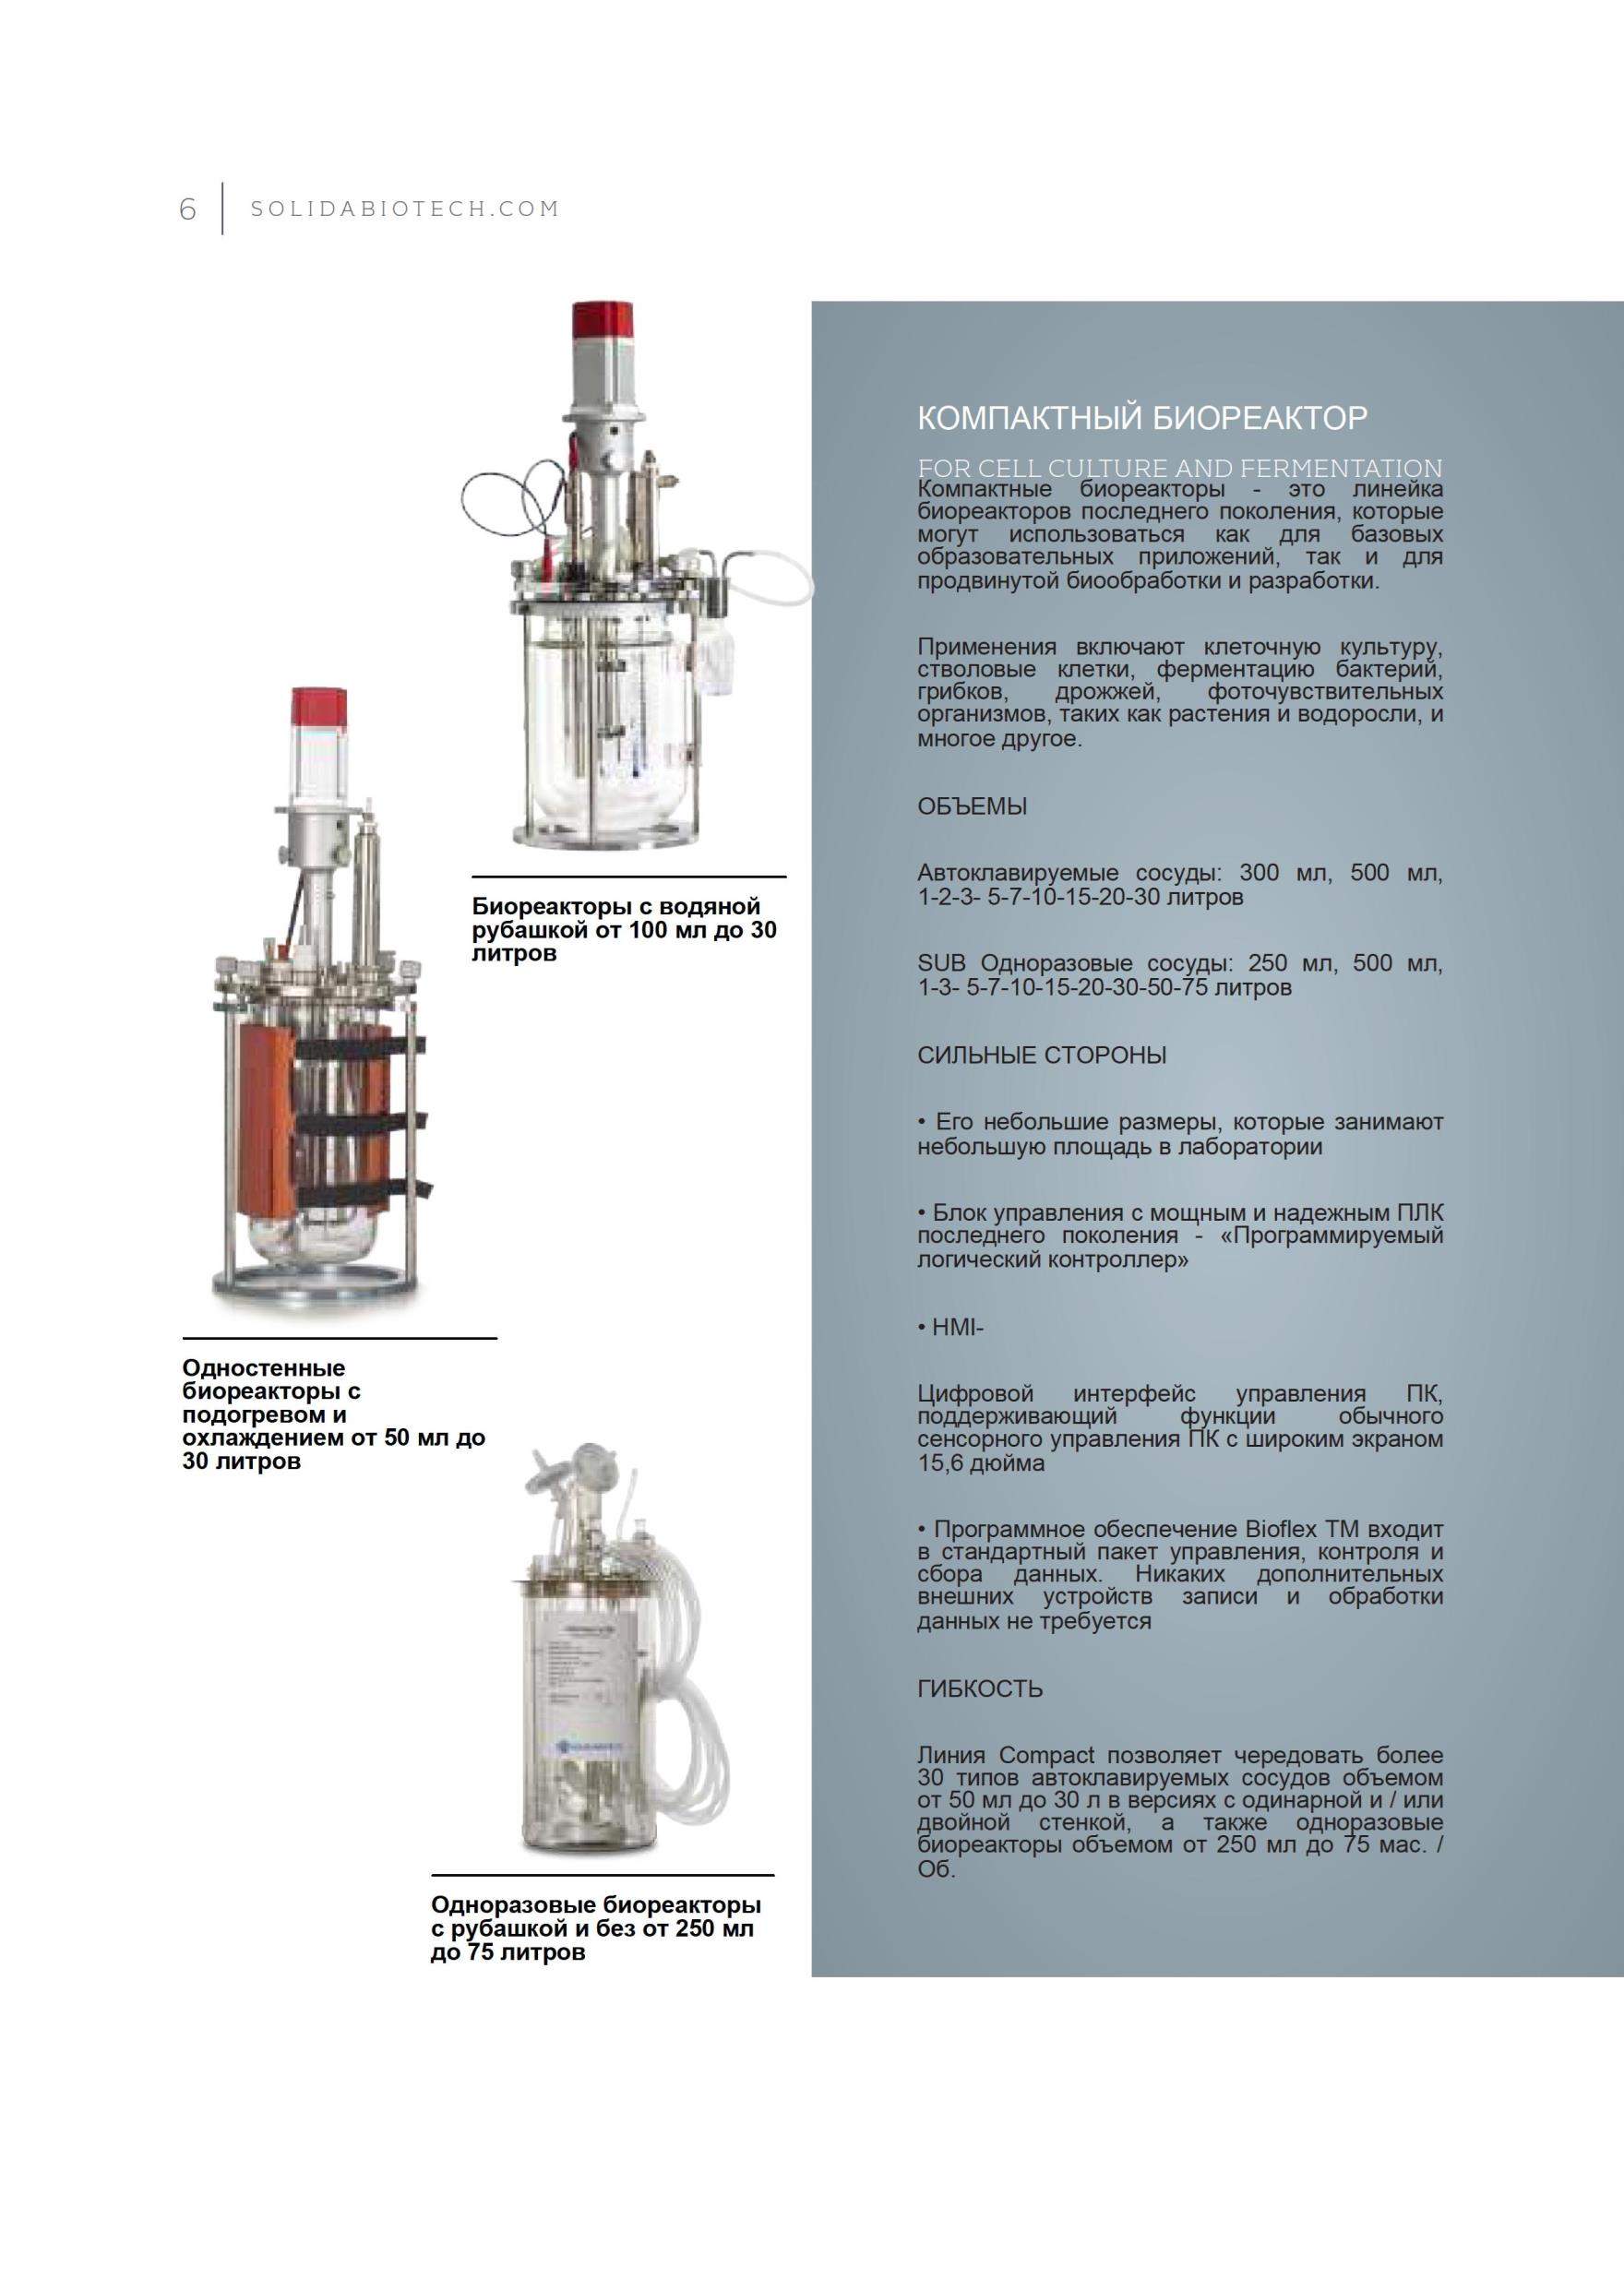 General Catalogue Solida Biotech GmBH2_compressed (2 - 0004